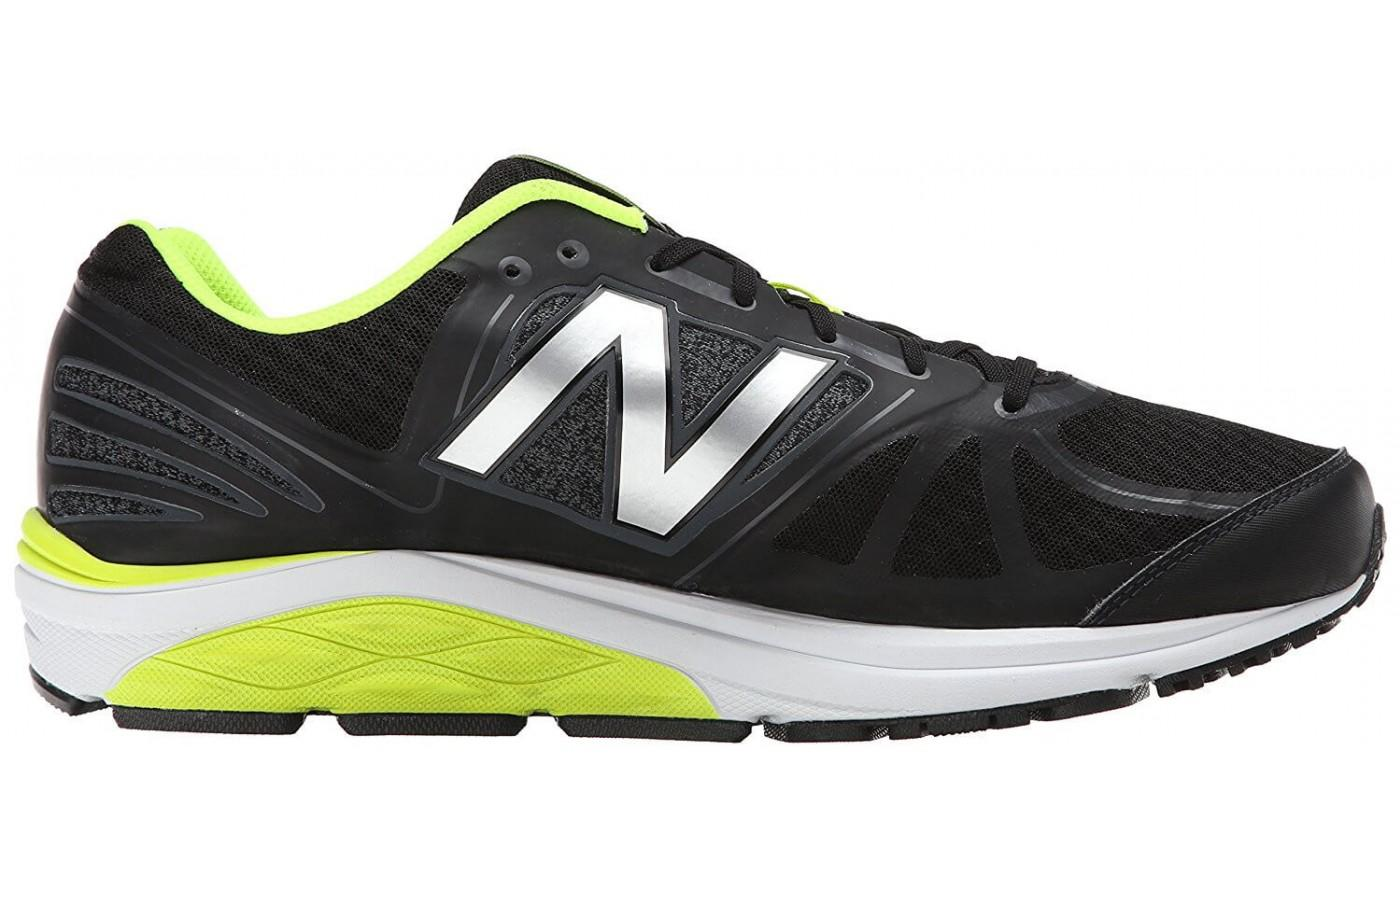 new balance 770v5 pronation